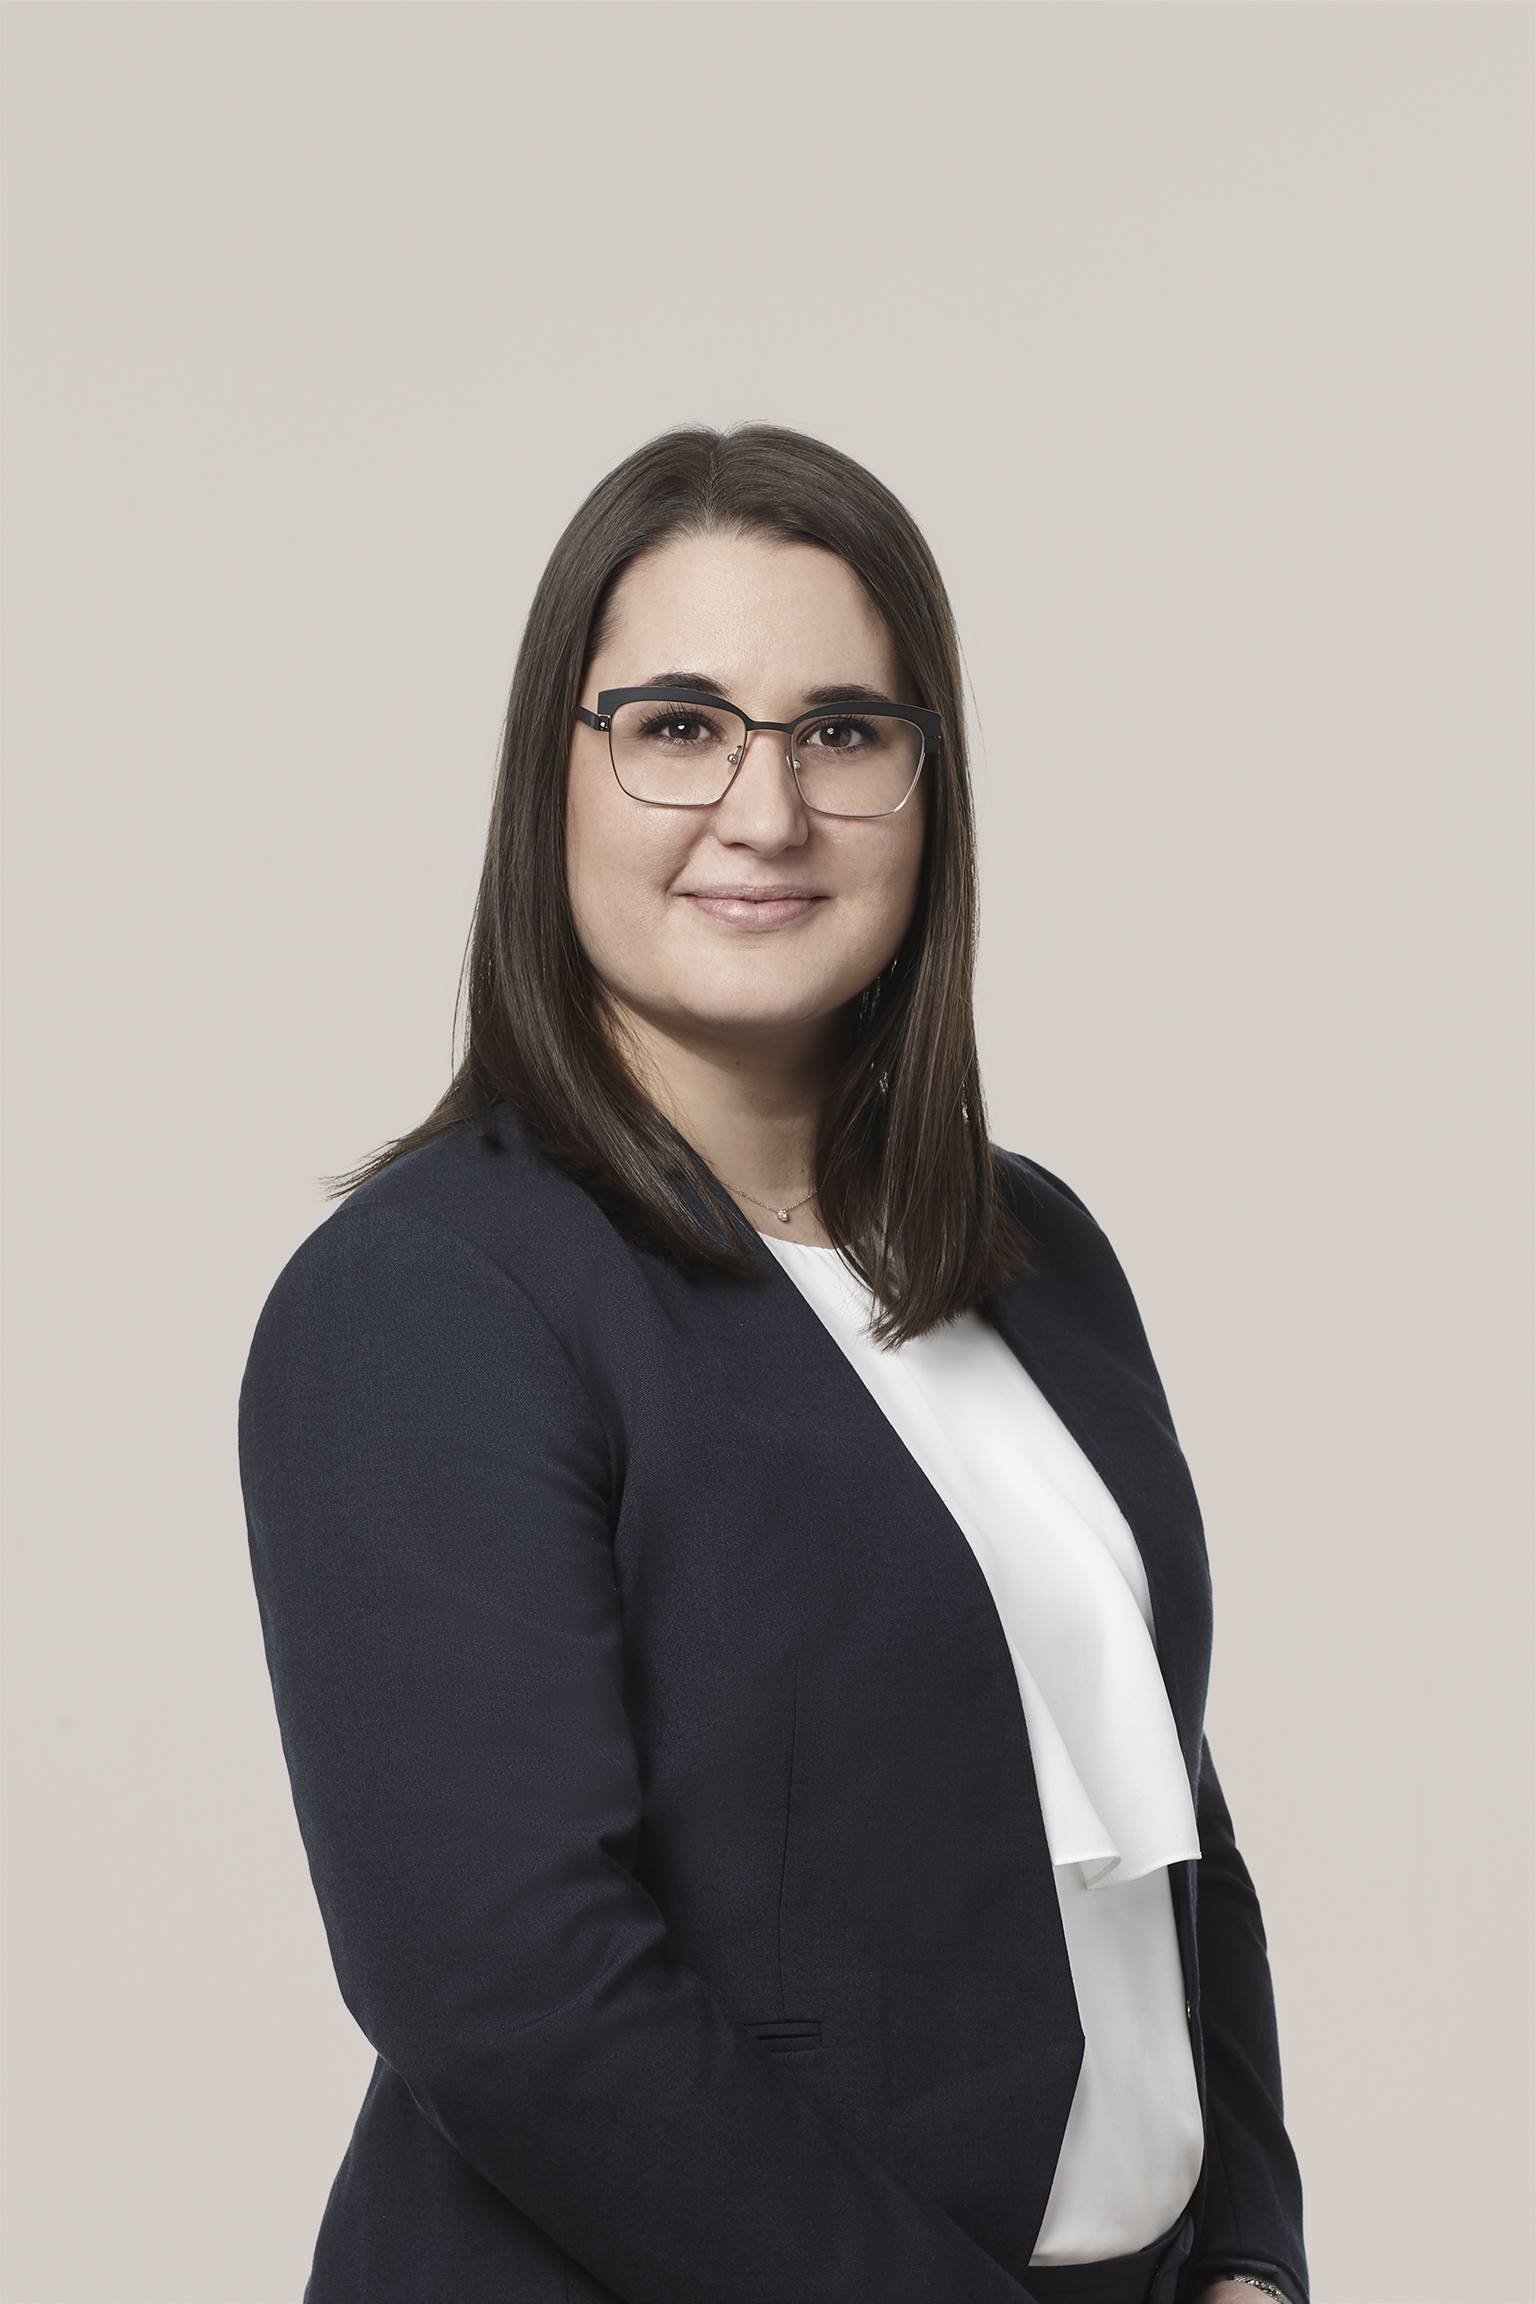 Élaine Laberge-Poirier | Banking & Finance Lawyer in Montréal